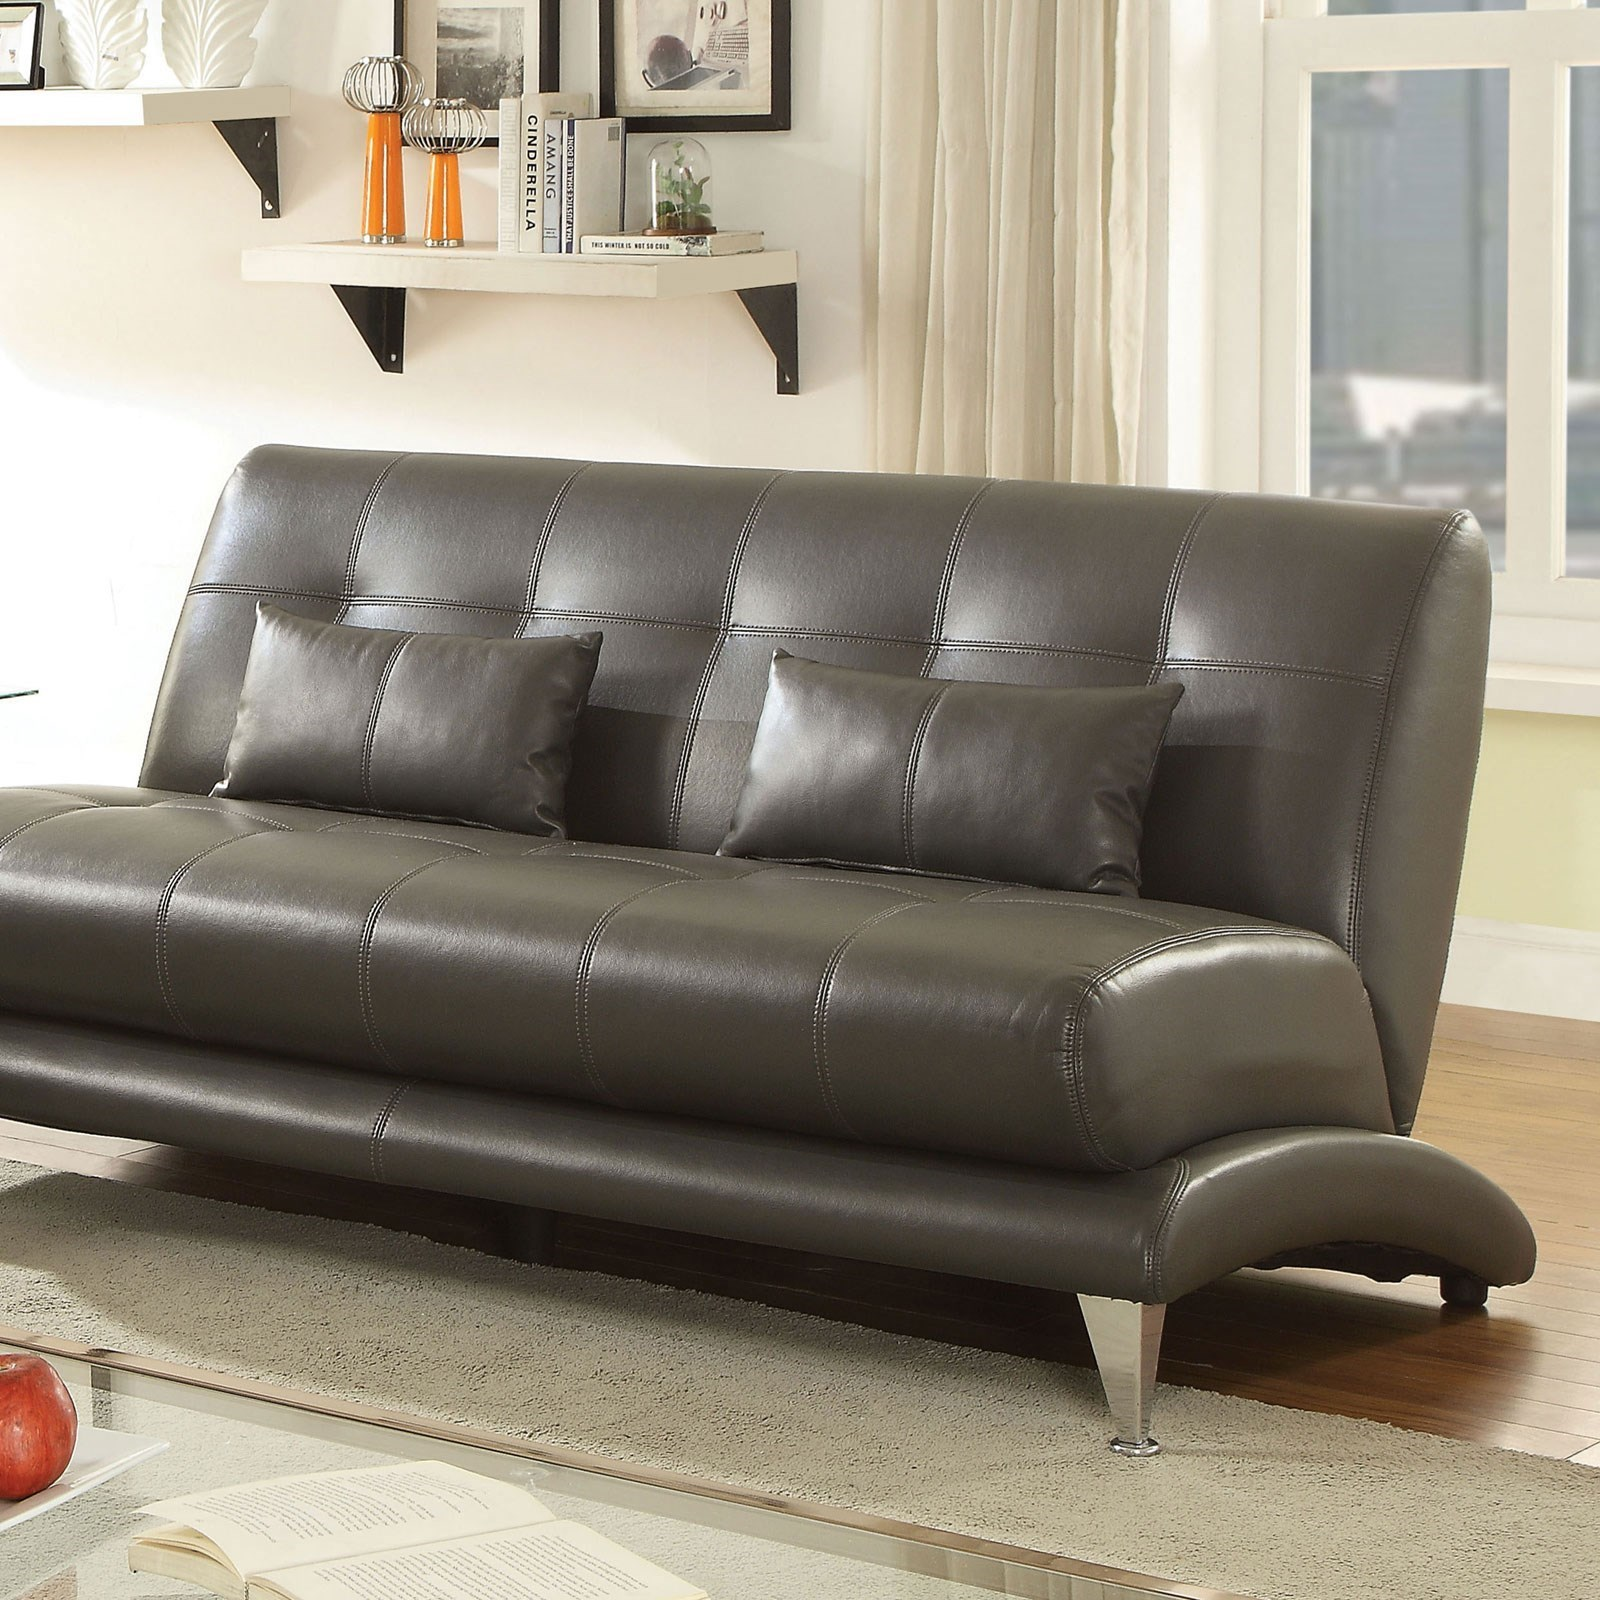 Contemporary Couch Sherri Contemporary Tufted Sofa With Pillows By Furniture Of America At Rooms For Less